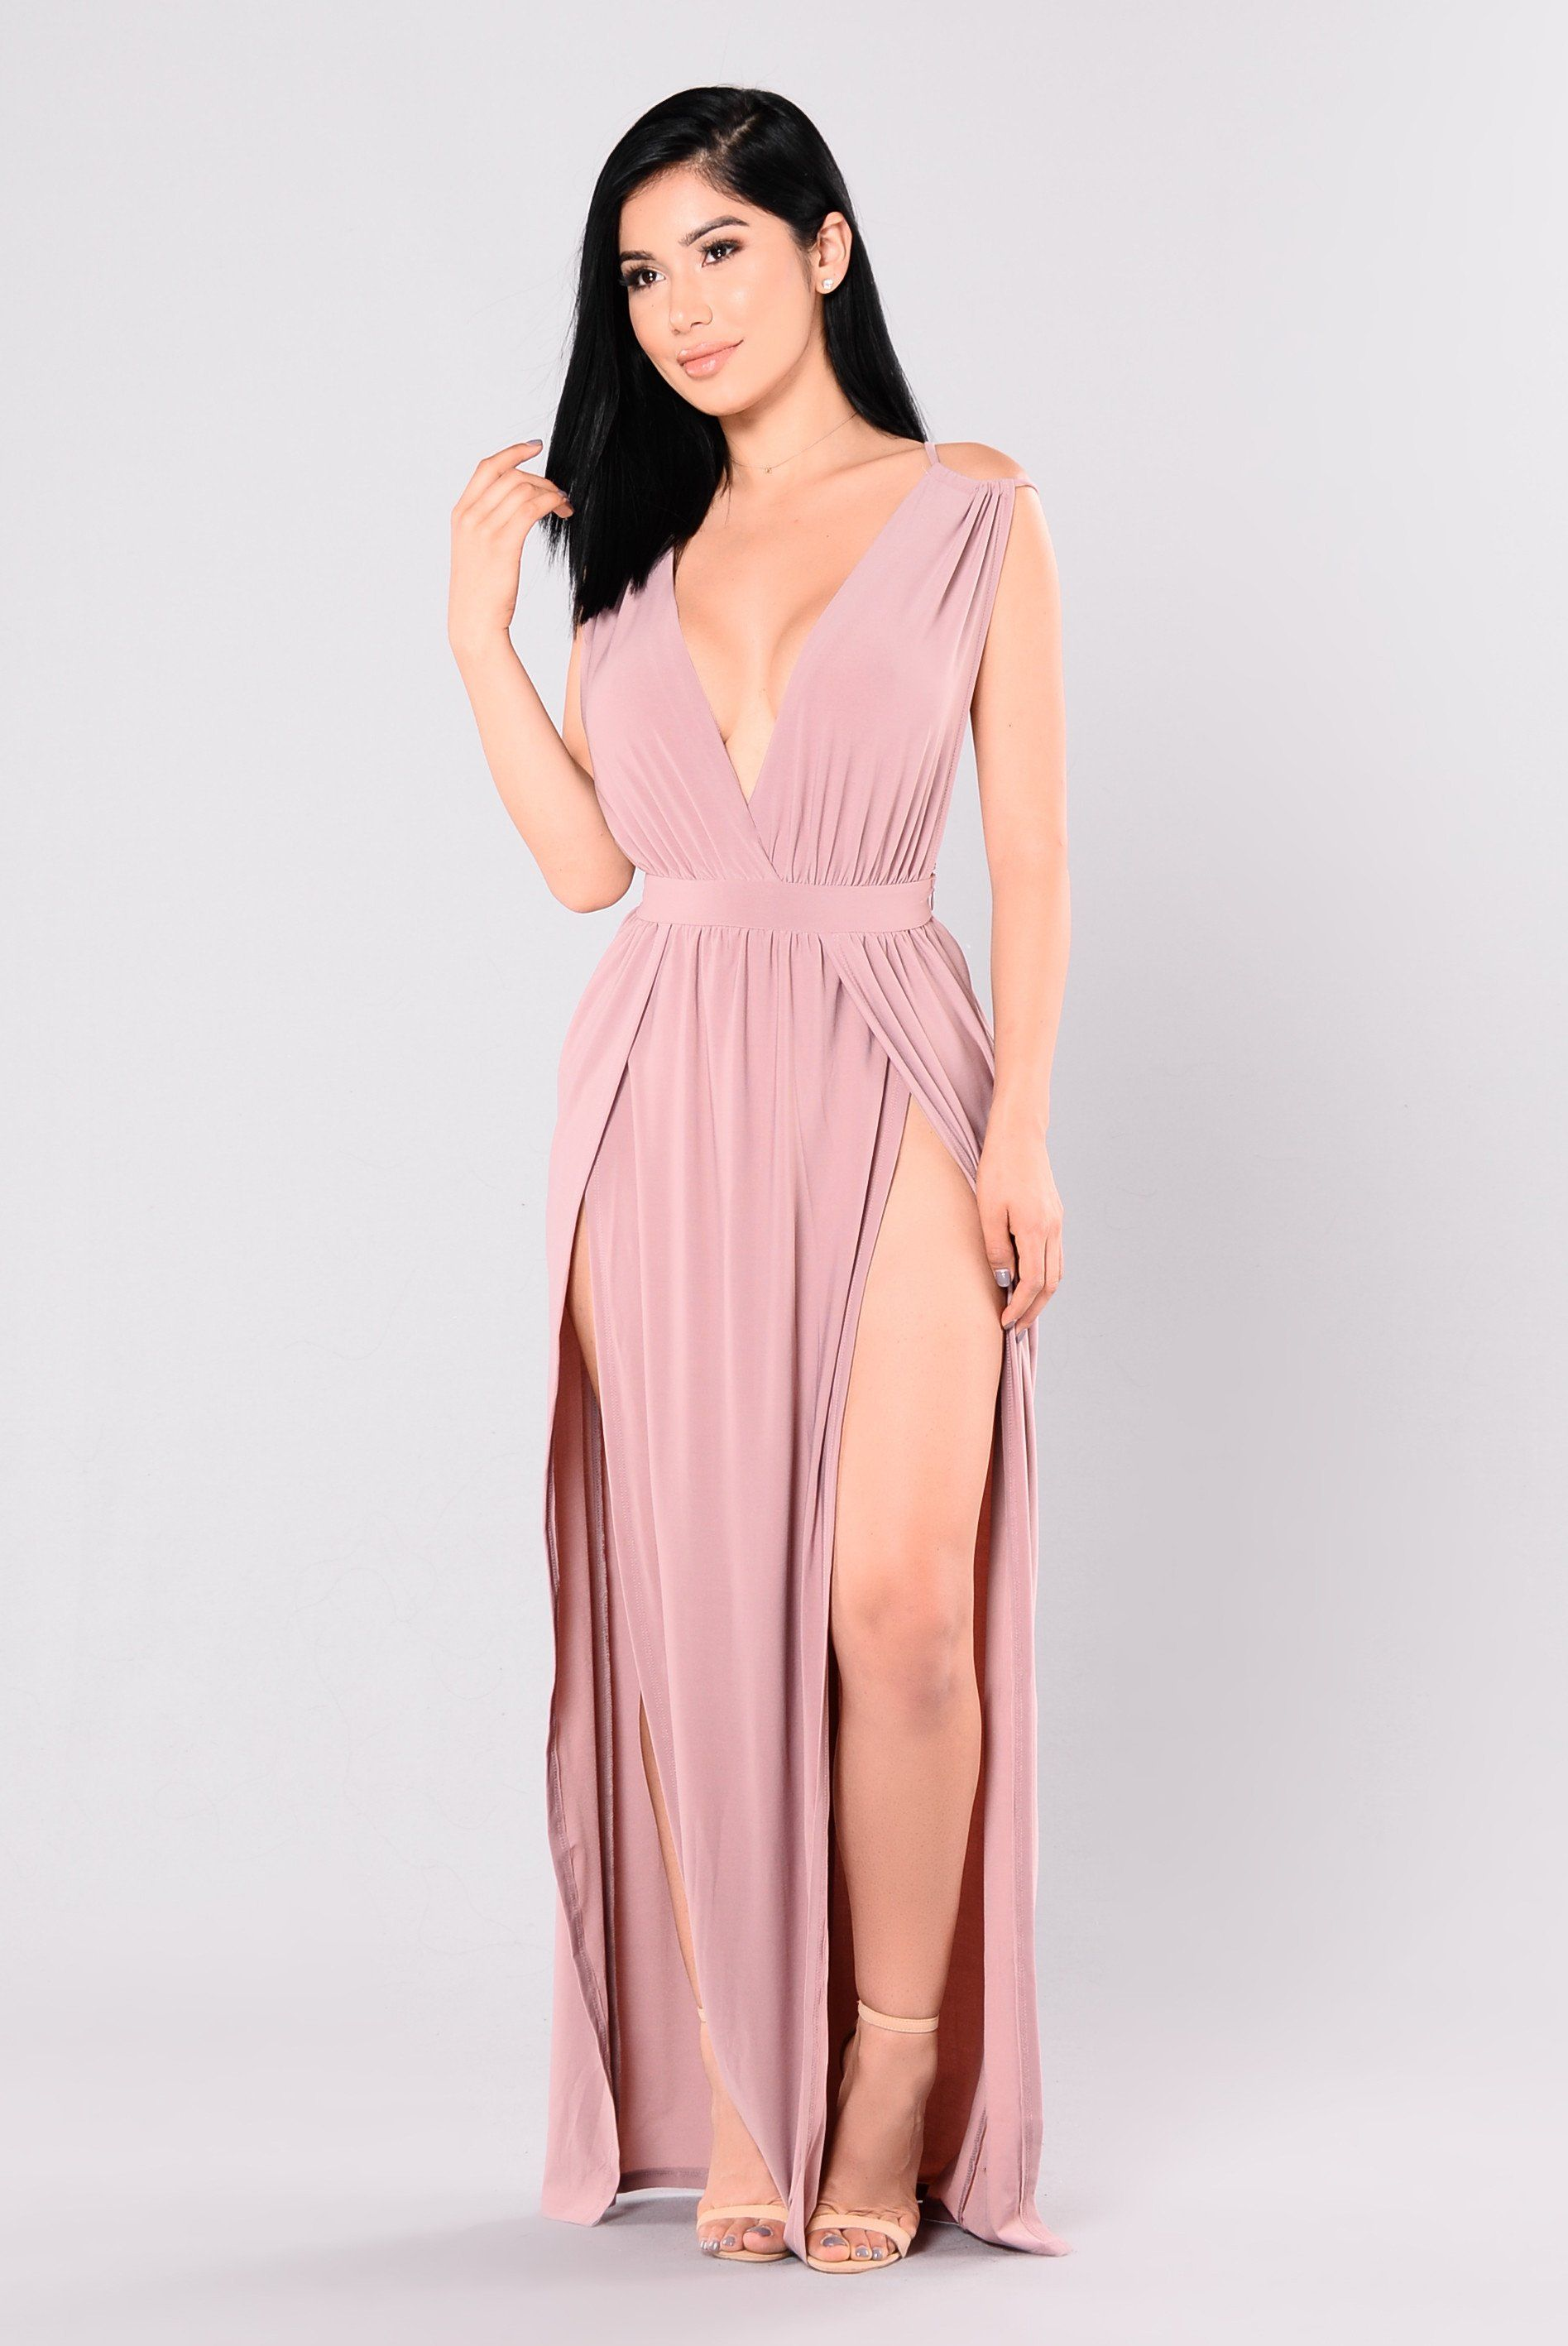 Magic Dress - Mauve | Vestidos de fiesta, Muerte y Elegancia